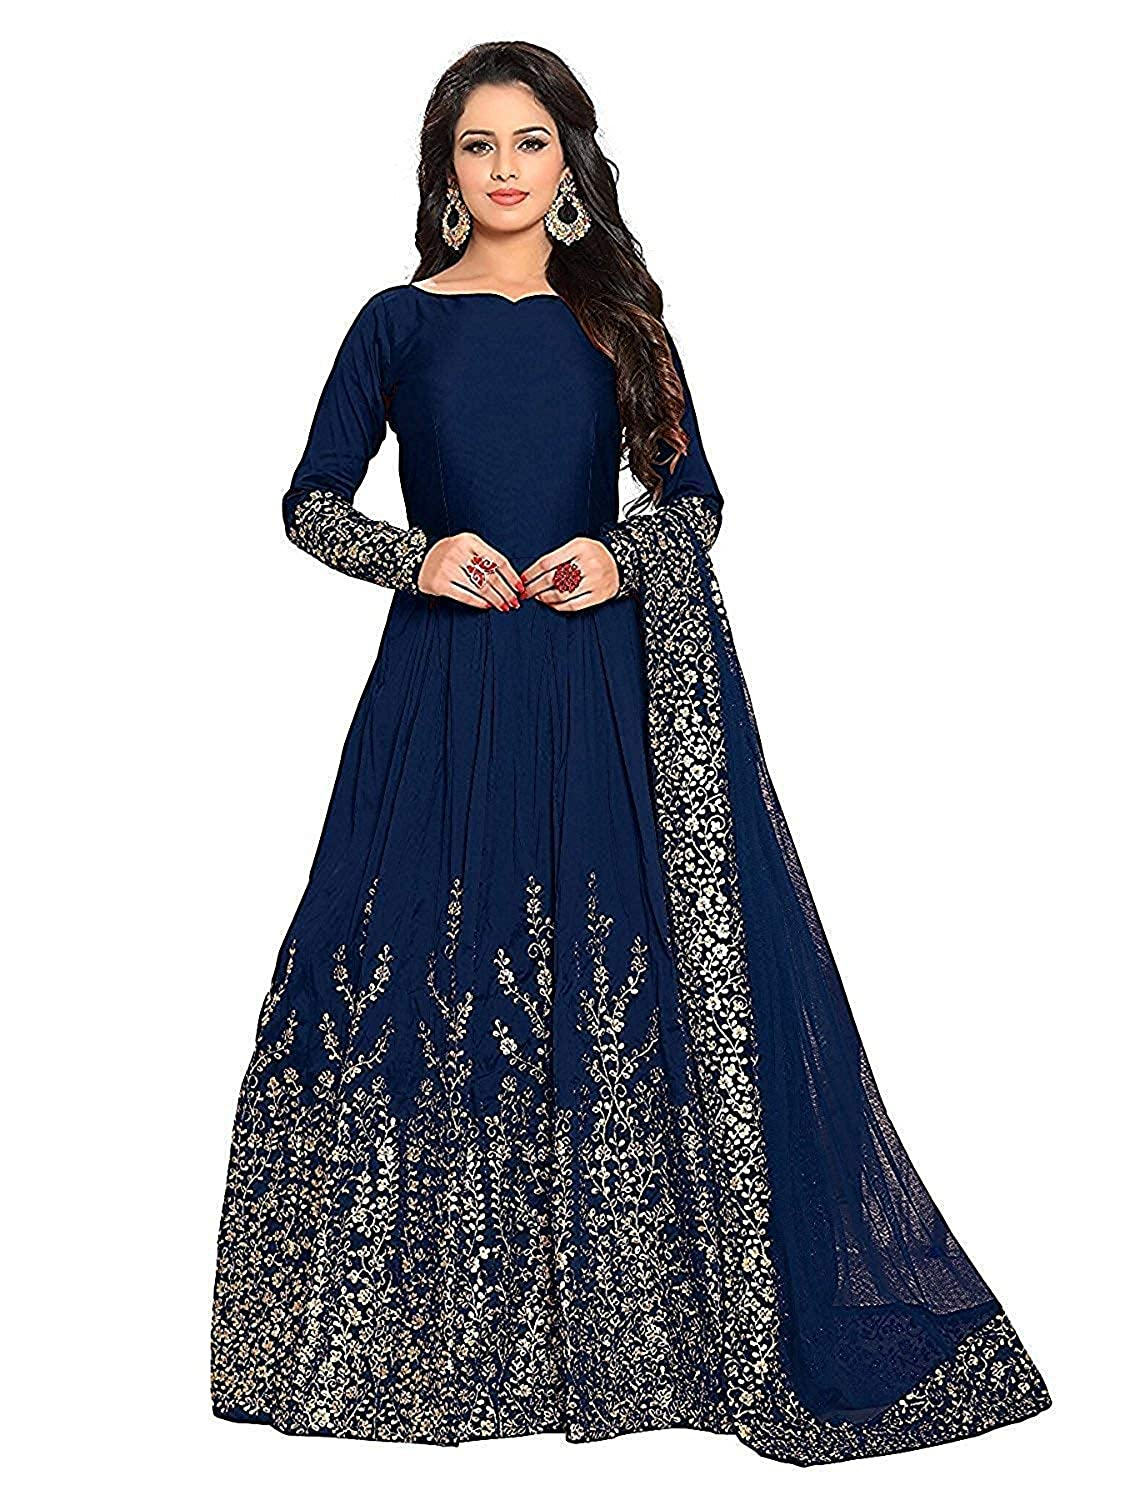 Varudi Fashion Women's Embroidered Semi Stitched Anarkali Gown